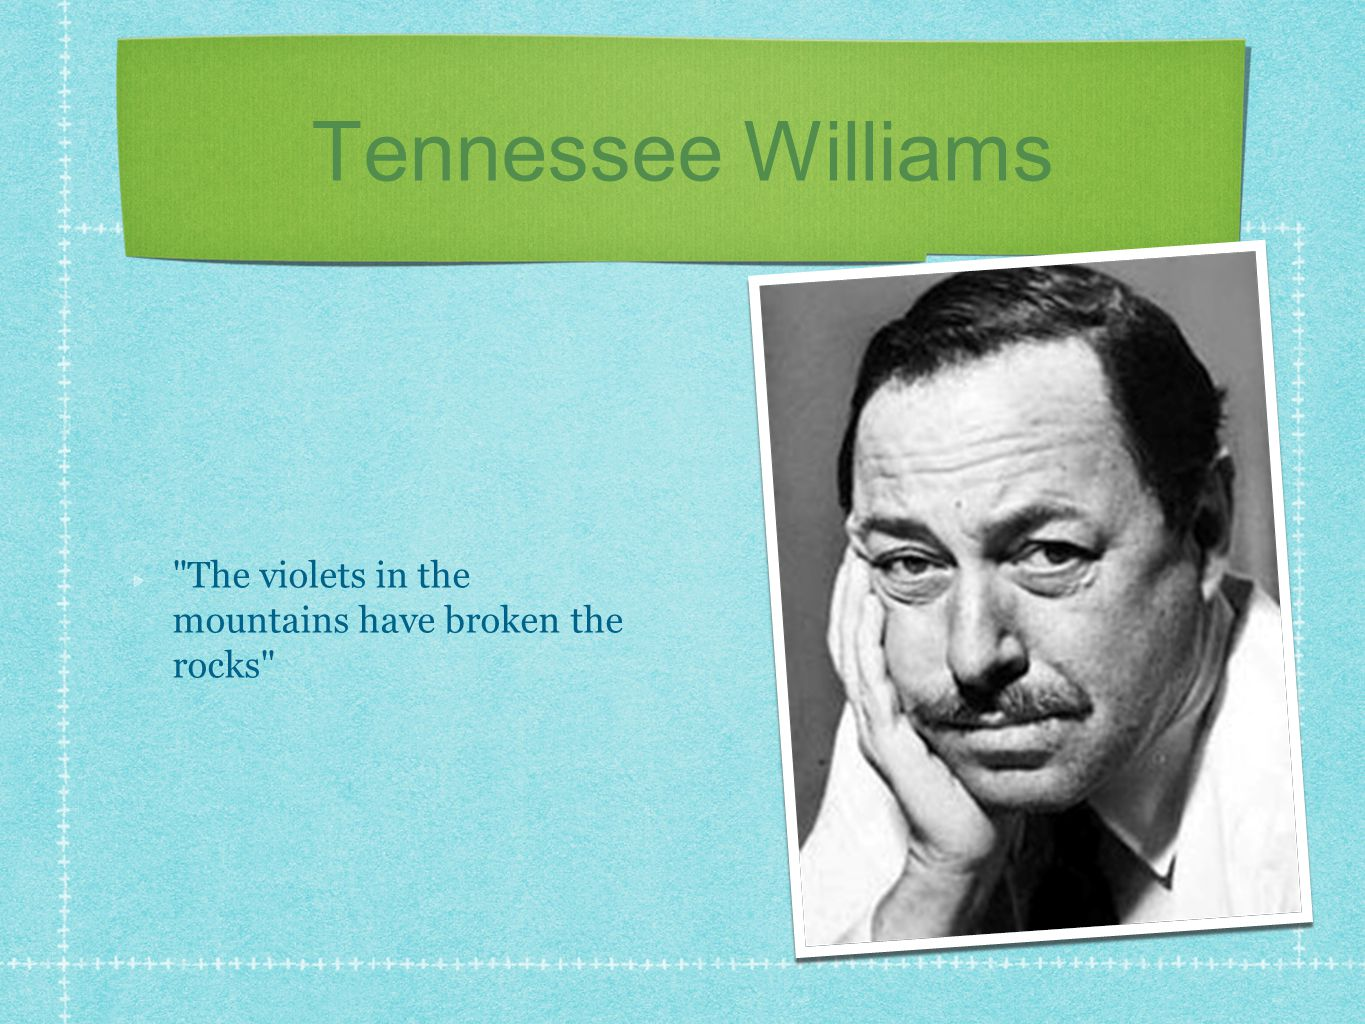 Tennessee Williams The violets in the mountains have broken the rocks